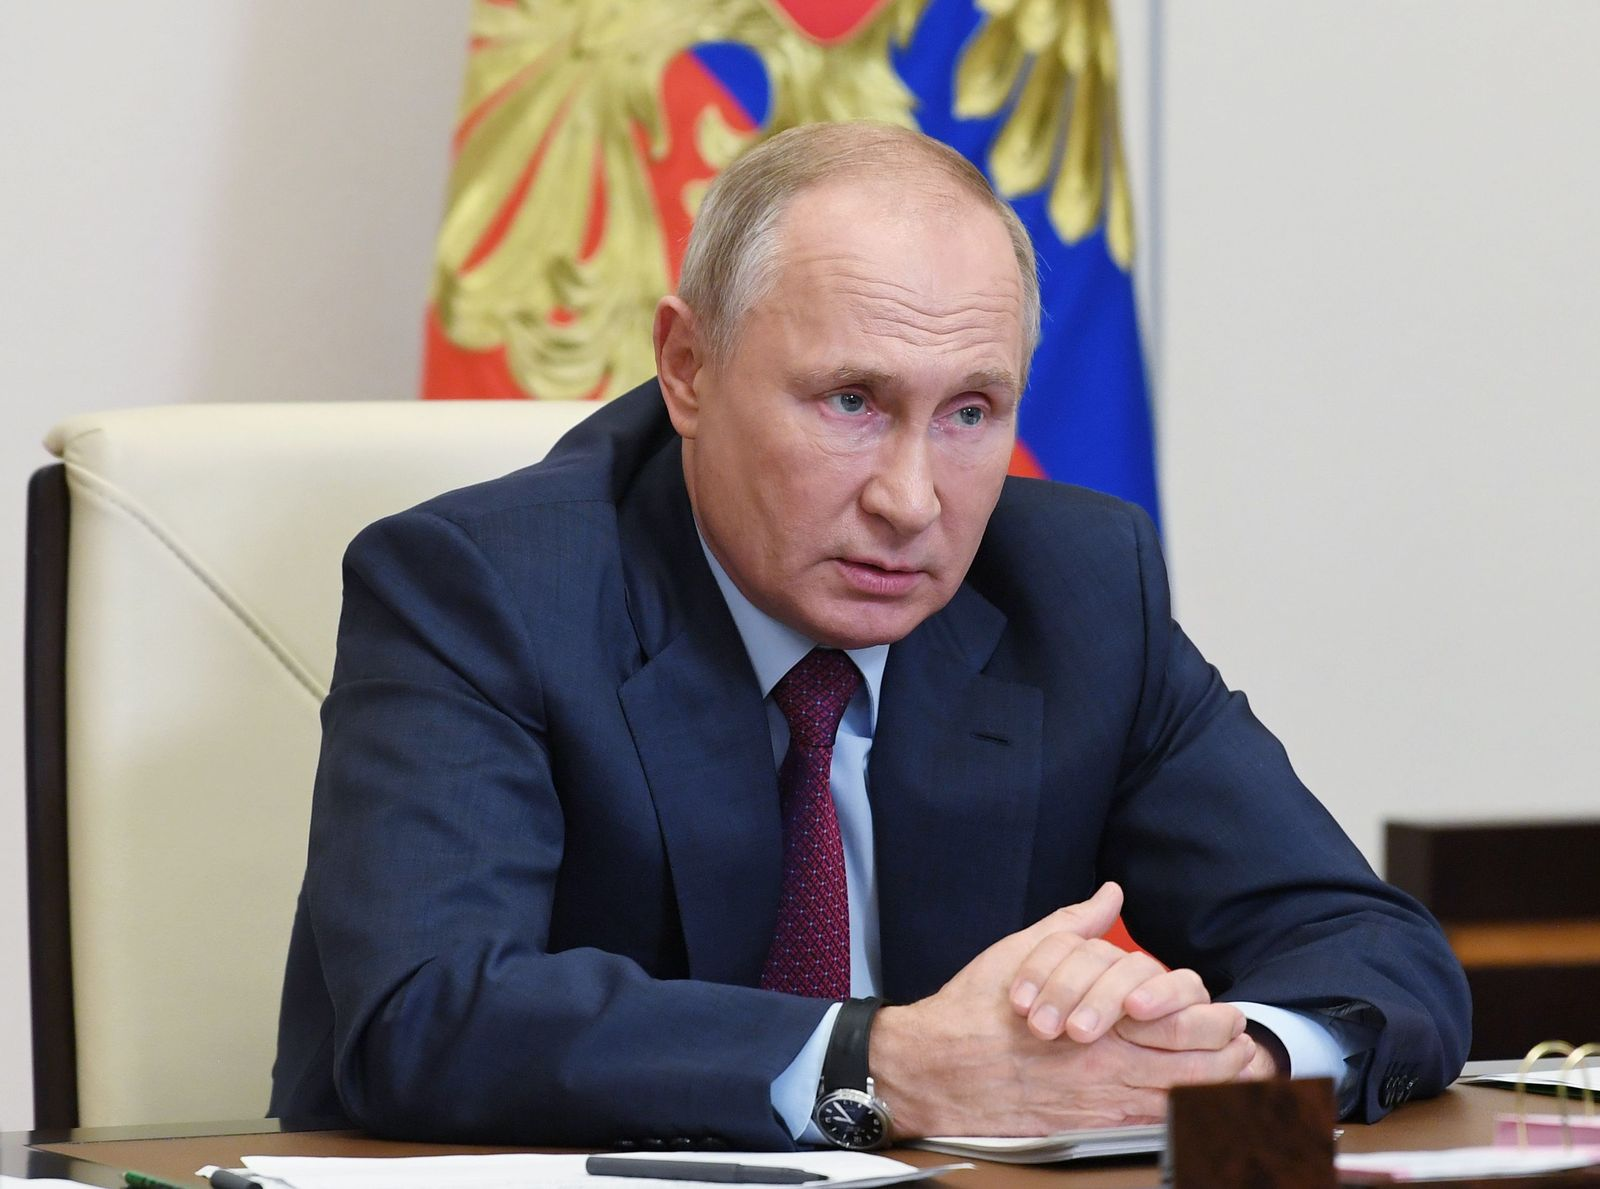 Russian President Vladimir Putin chairs meeting with members of the government via teleconference call, Novo Ogaryovo, Russian Federation - 18 Nov 2020